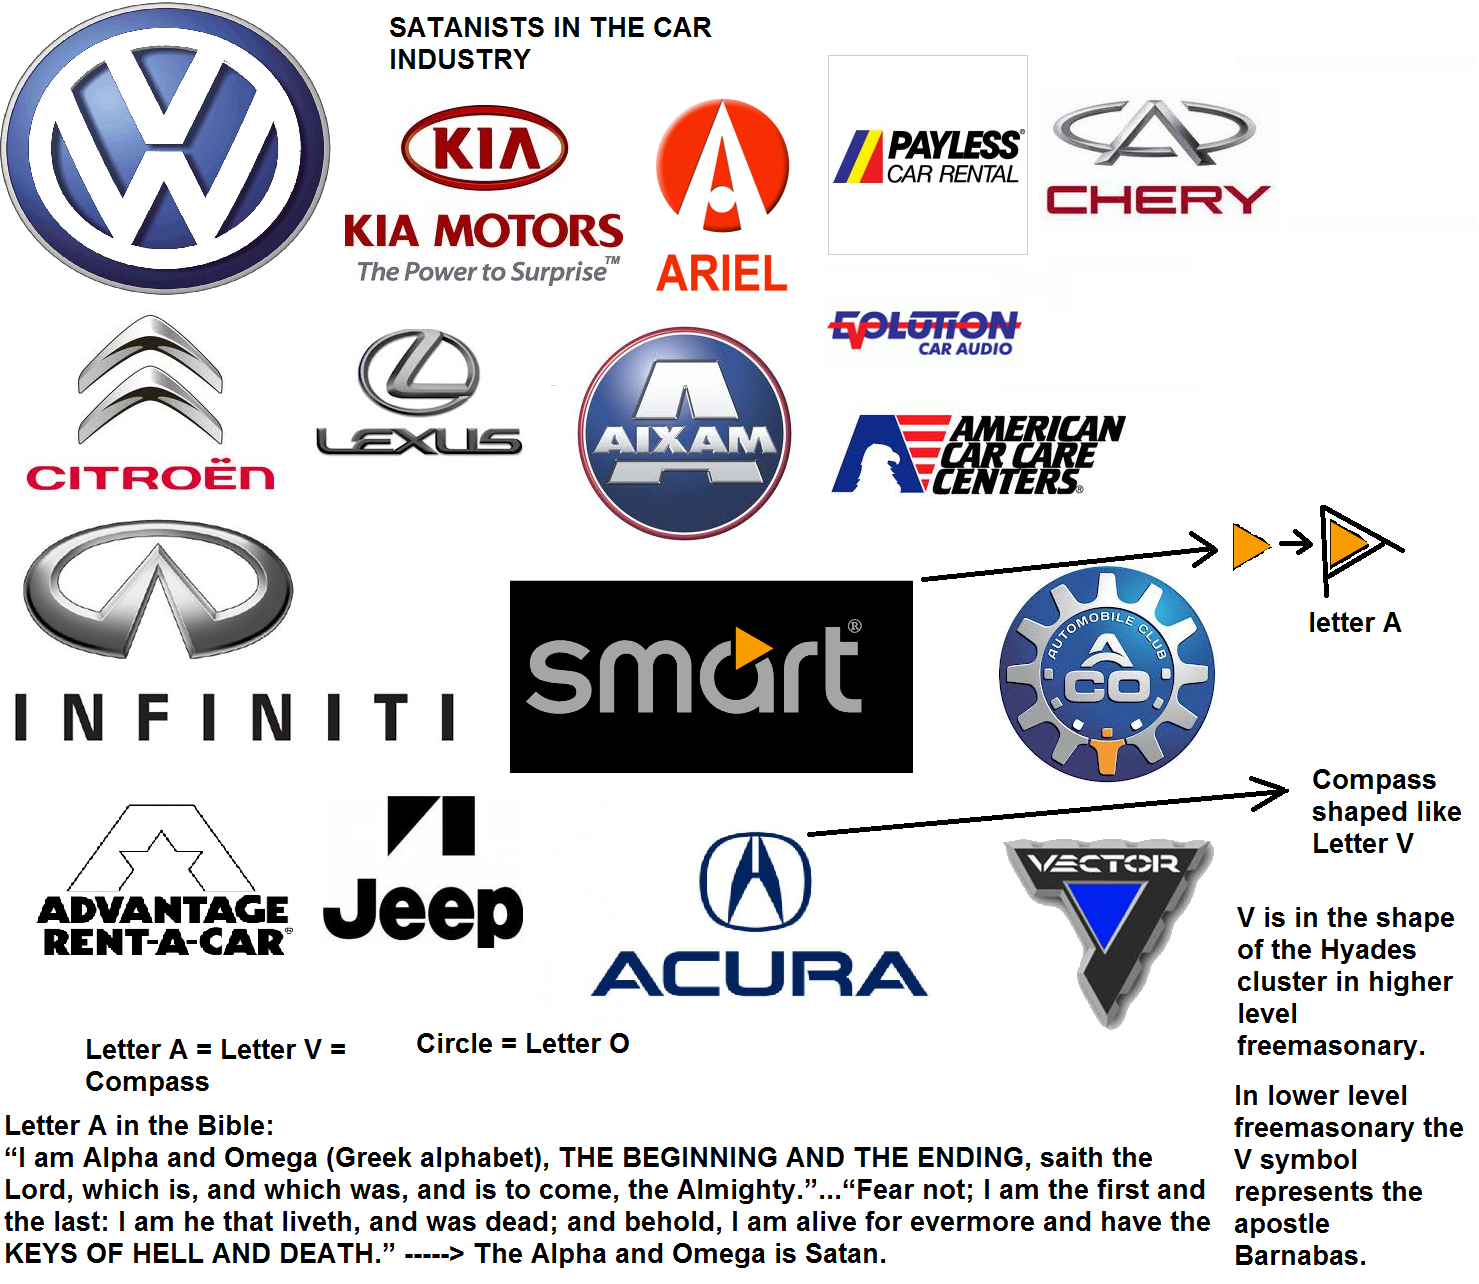 Satanists Monopoly On Oil And The Car Industry Exposed Truth Control